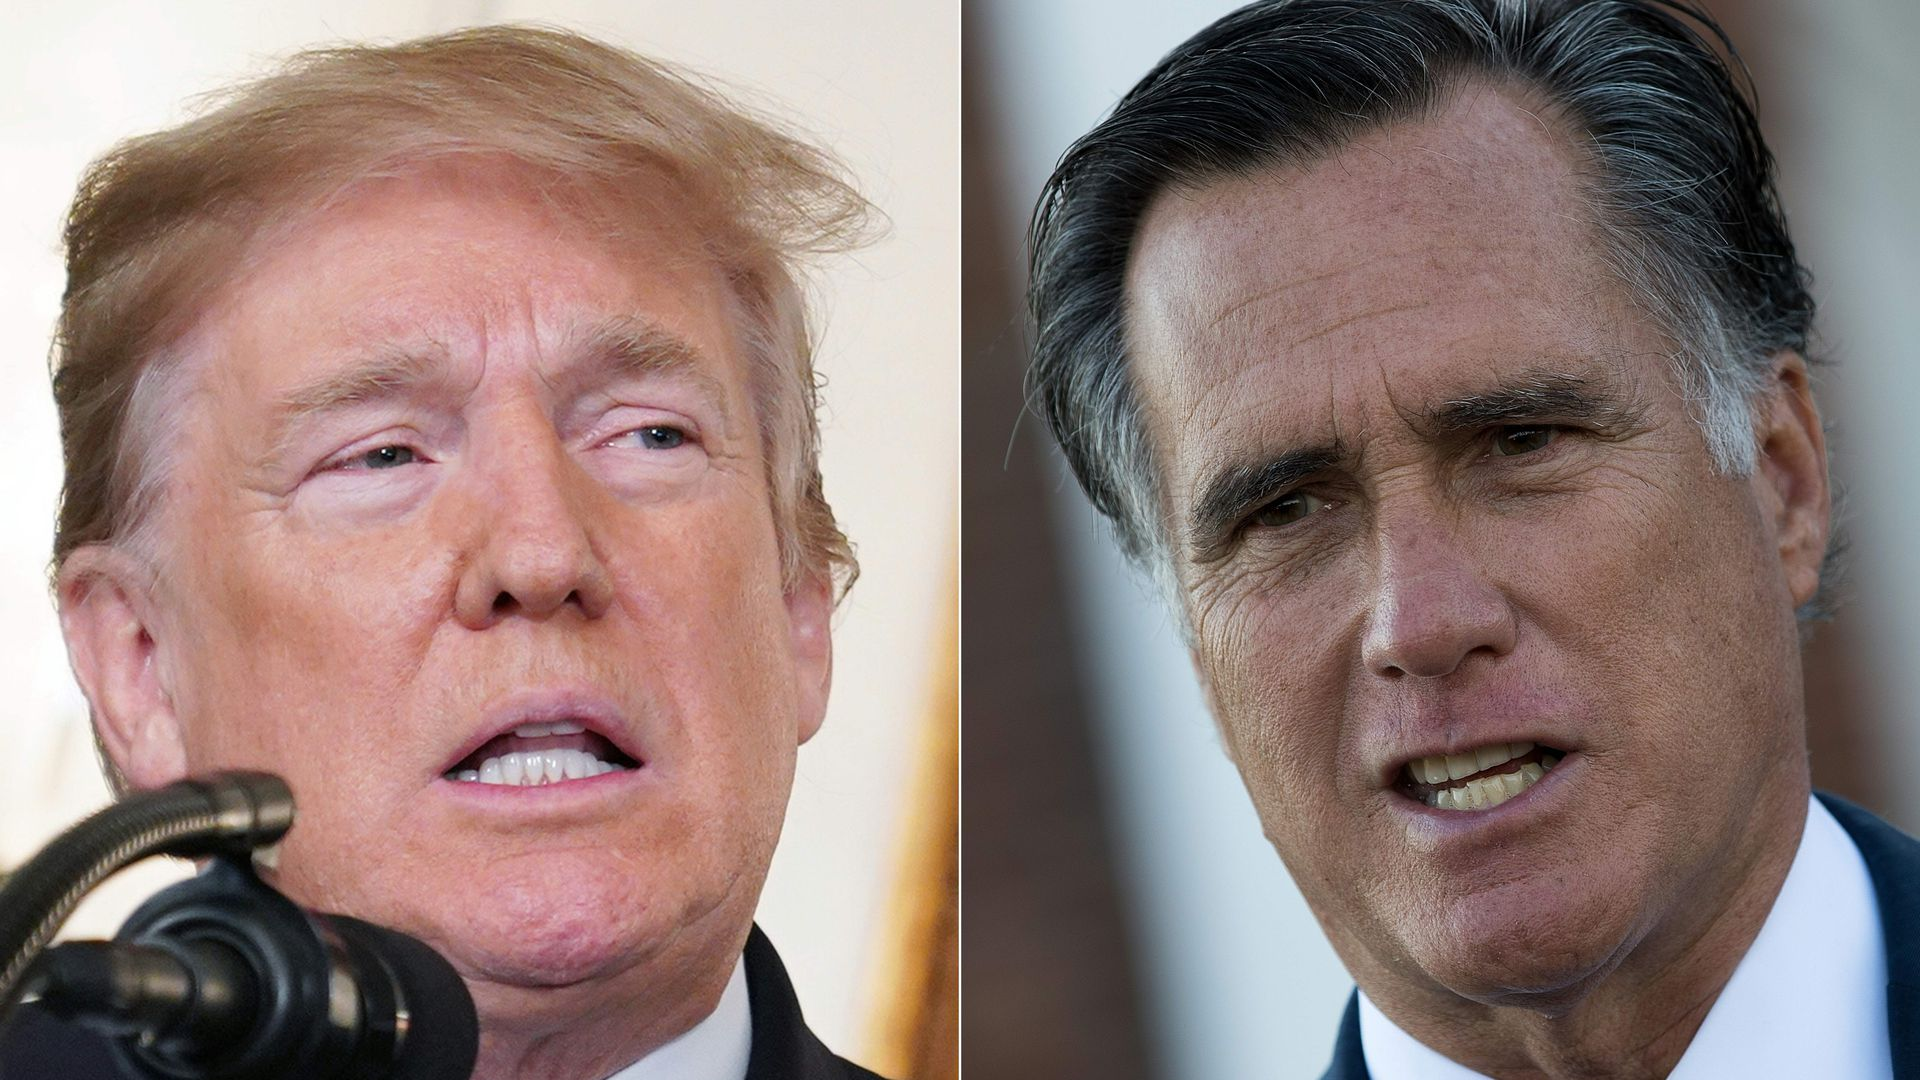 Donald Trump and Mitt Romney photos cropped together